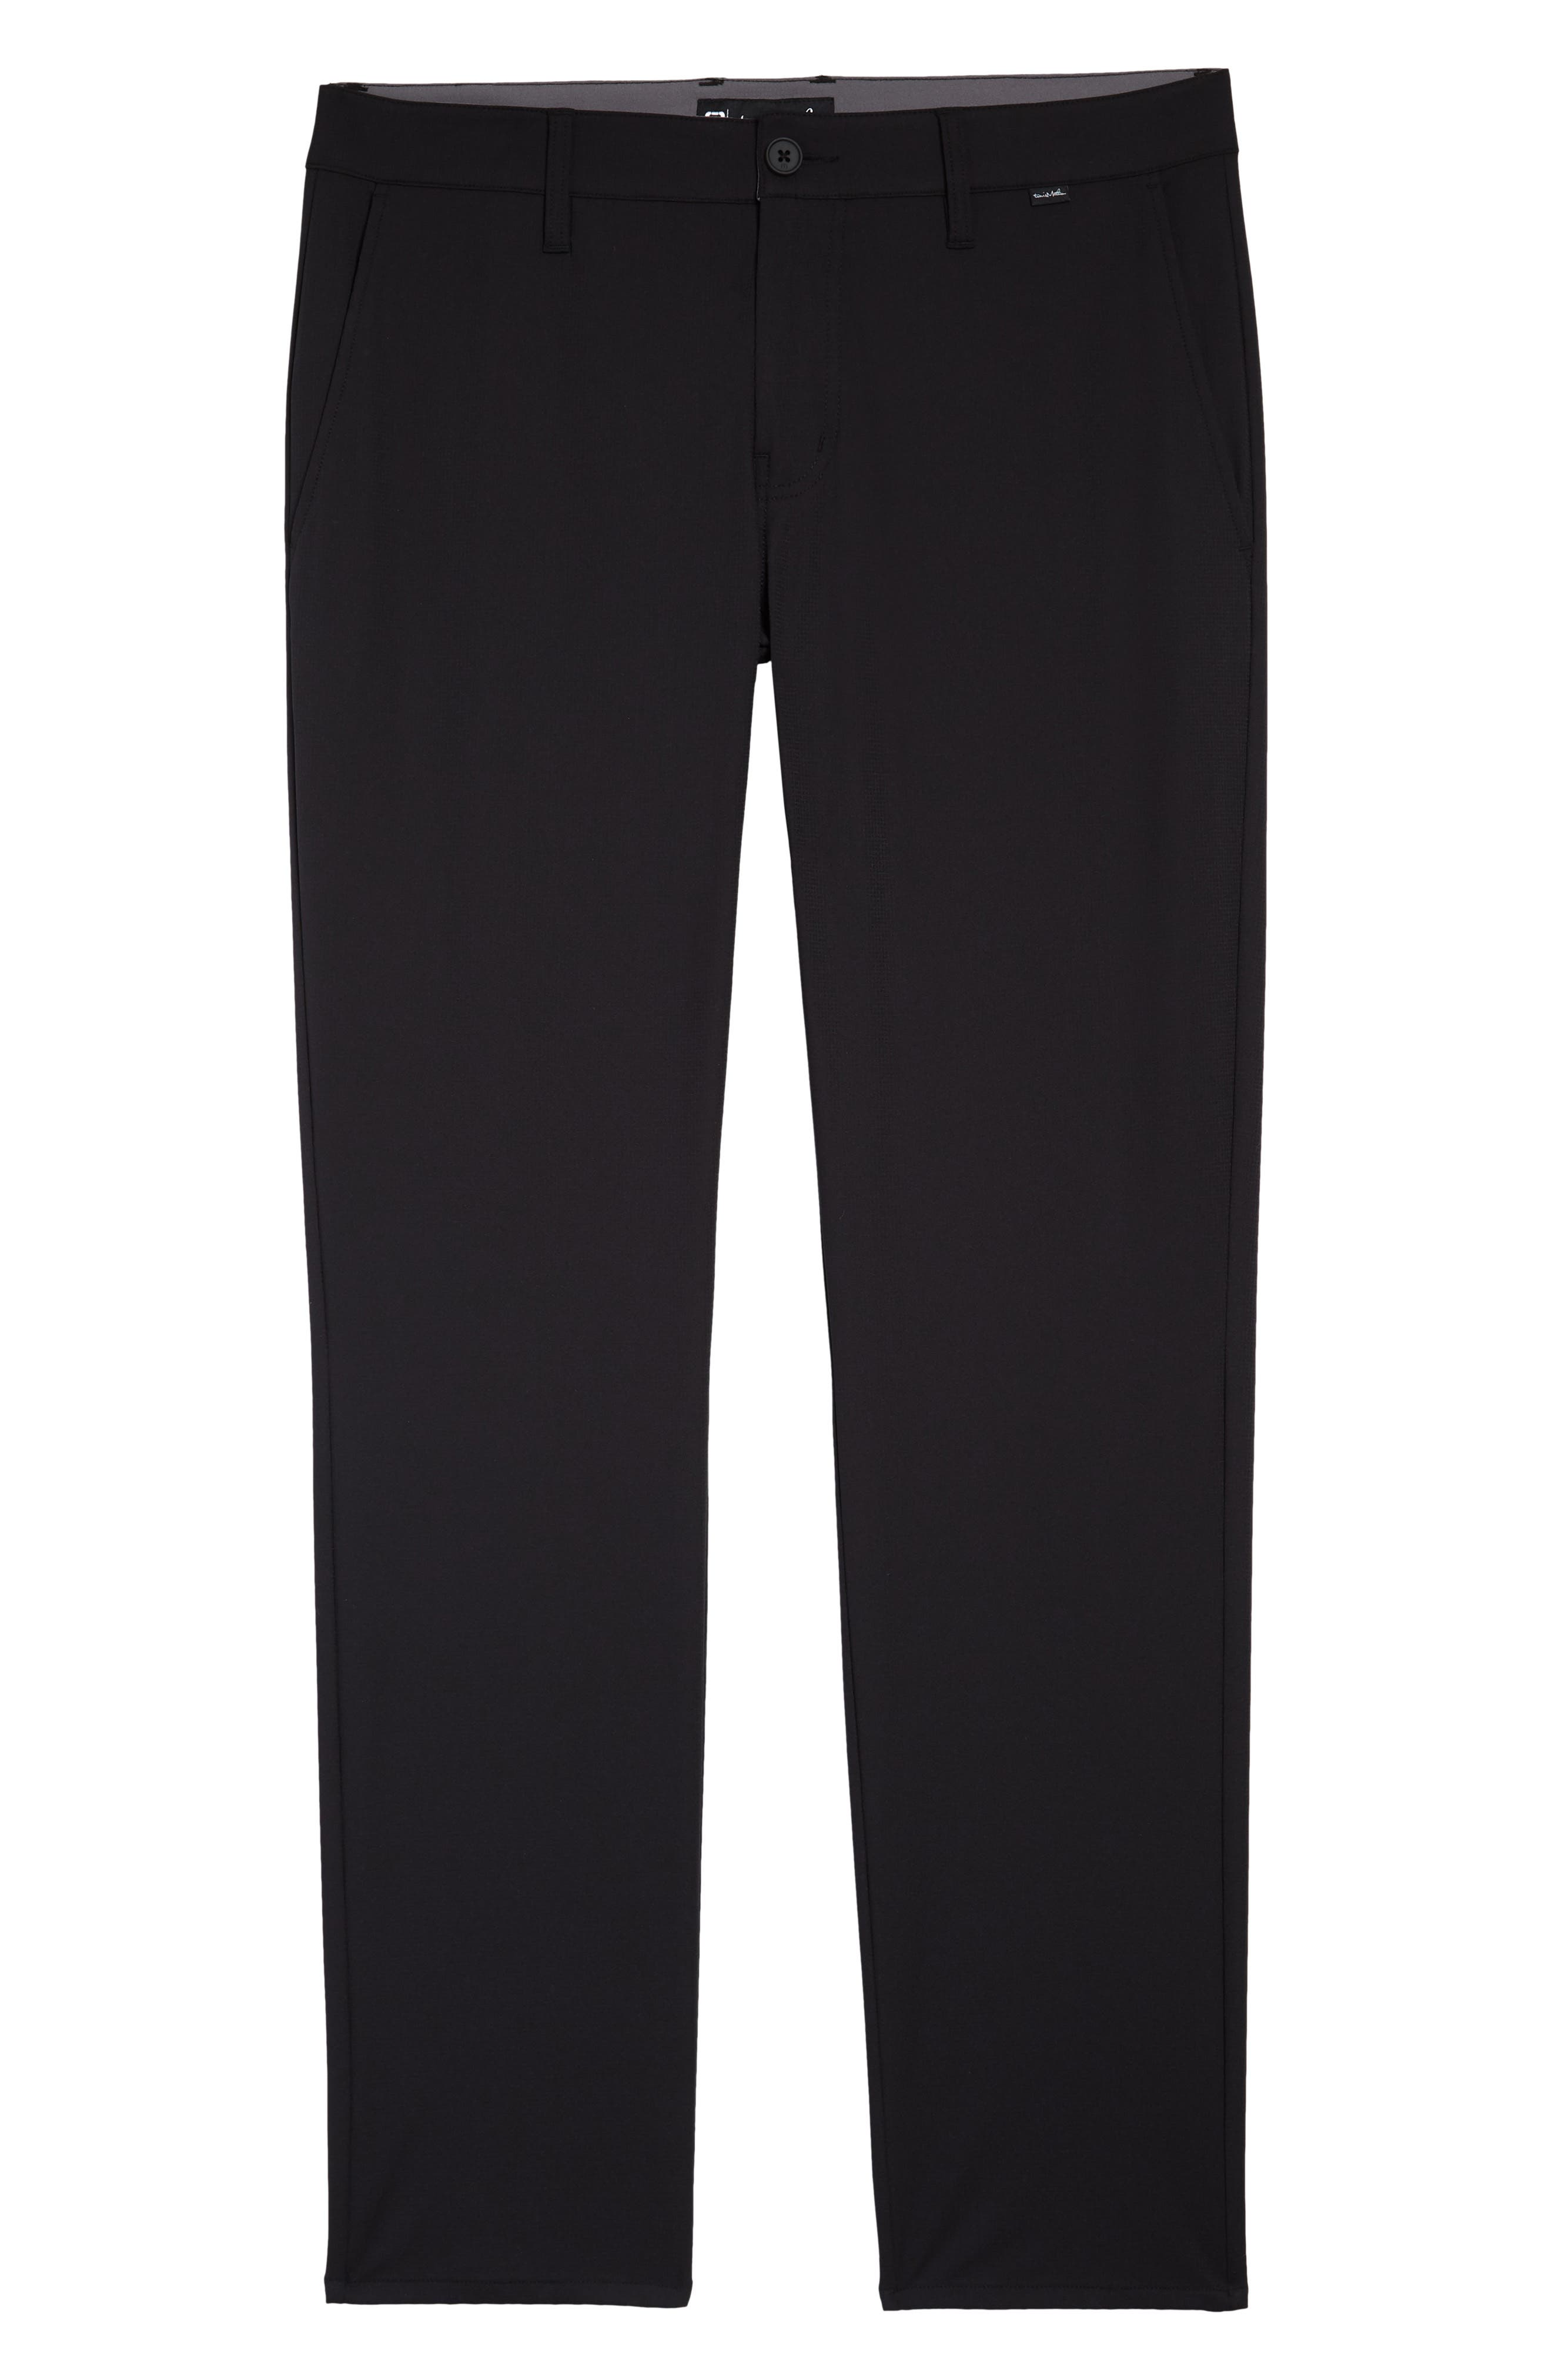 Abundant stretch adds everyday comfort to these sharp, versatile straight-leg pants. Style Name: Travismathew Right On Time Straight Leg Pants. Style Number: 5899020. Available in stores.